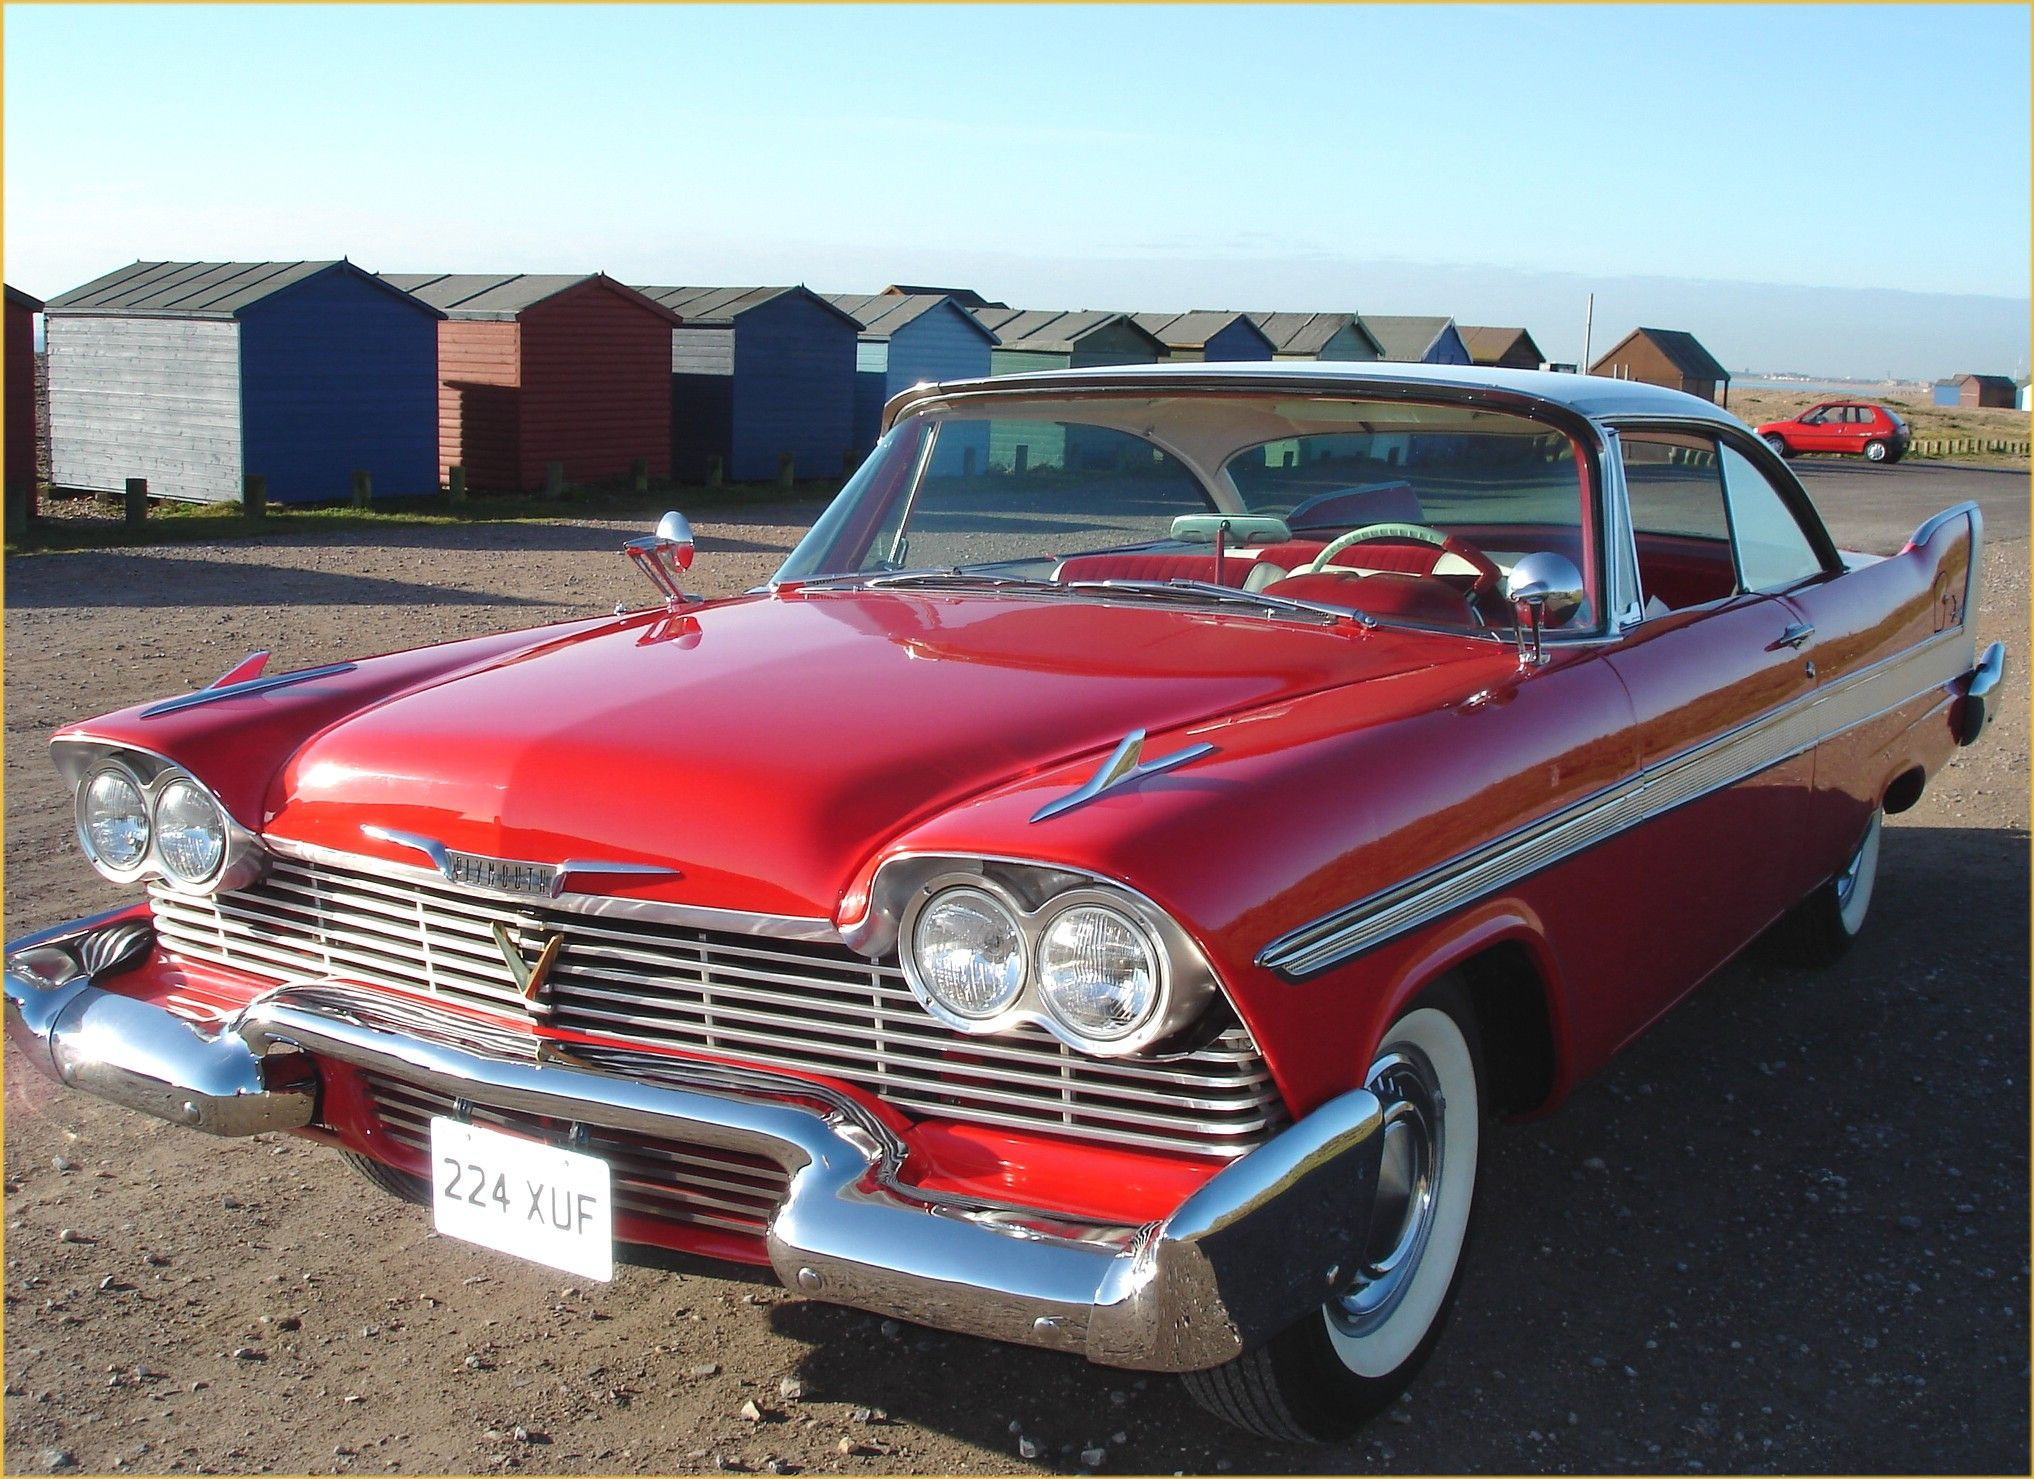 1958 plymouth fury i have loved this car ever since reading the stephen king book christine